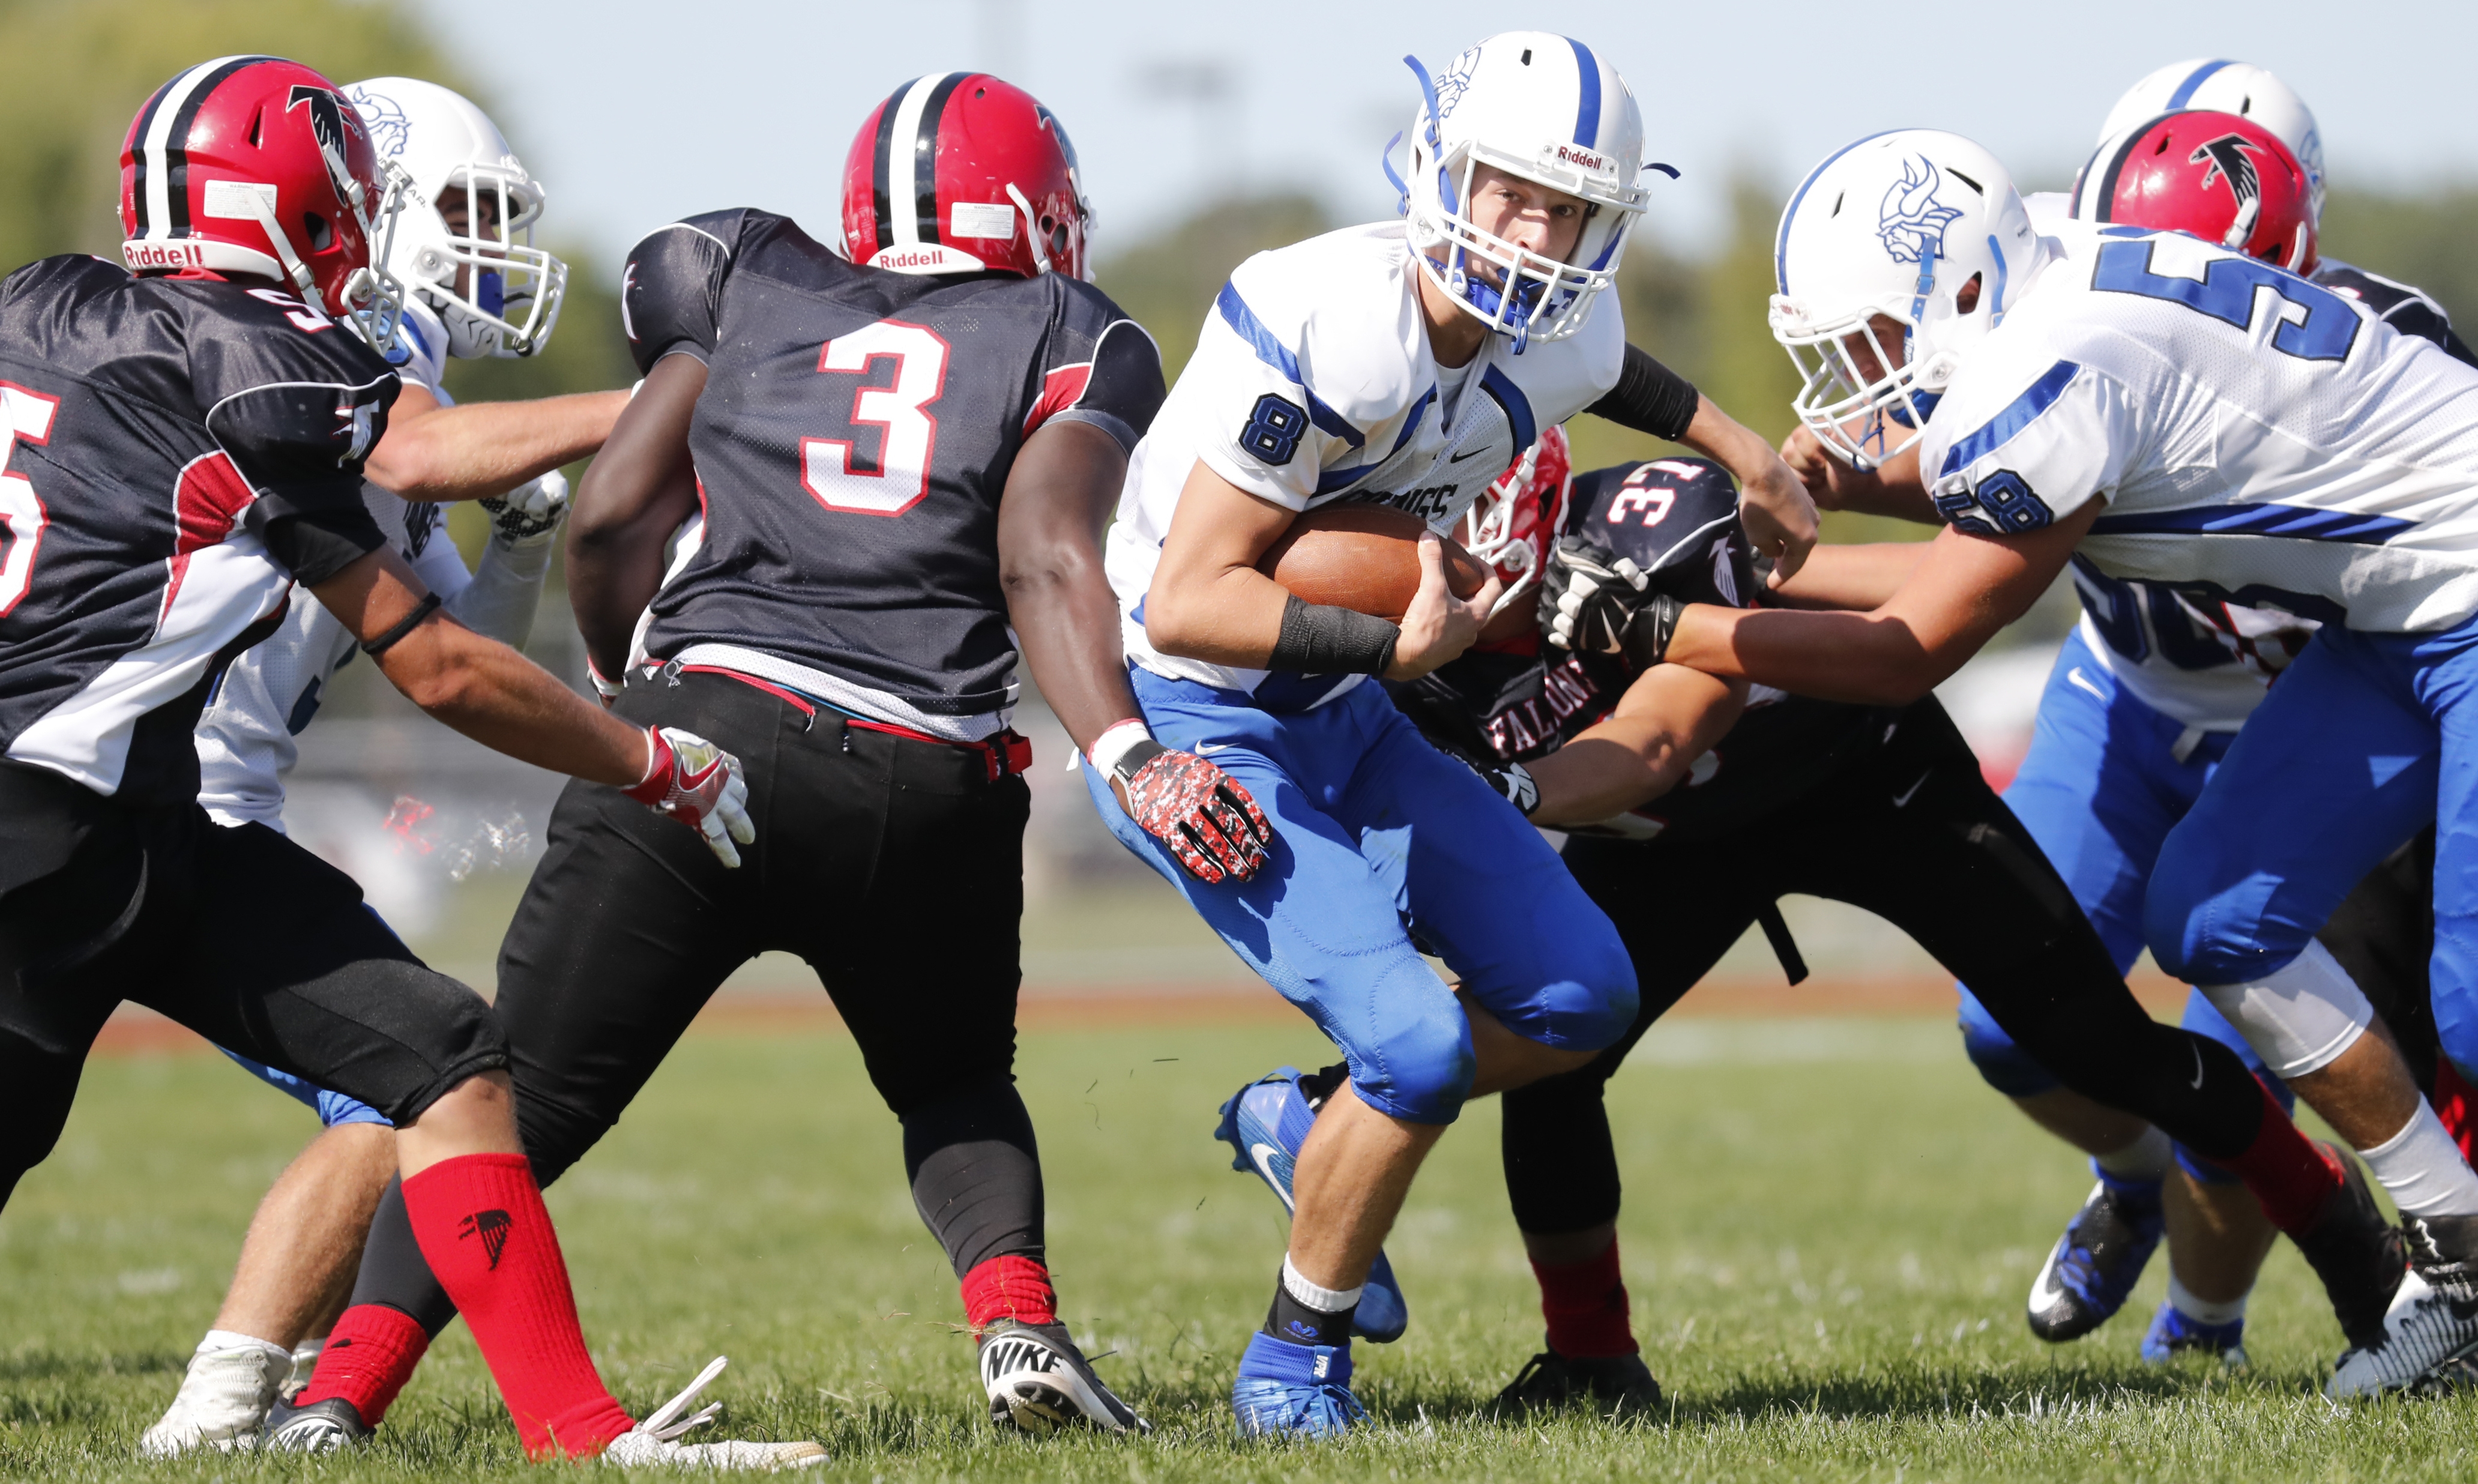 Quarterback Cam Sionko, with the ball, and the Grand Island Vikings take a 2-0 record into Week Three of the Section VI football season.